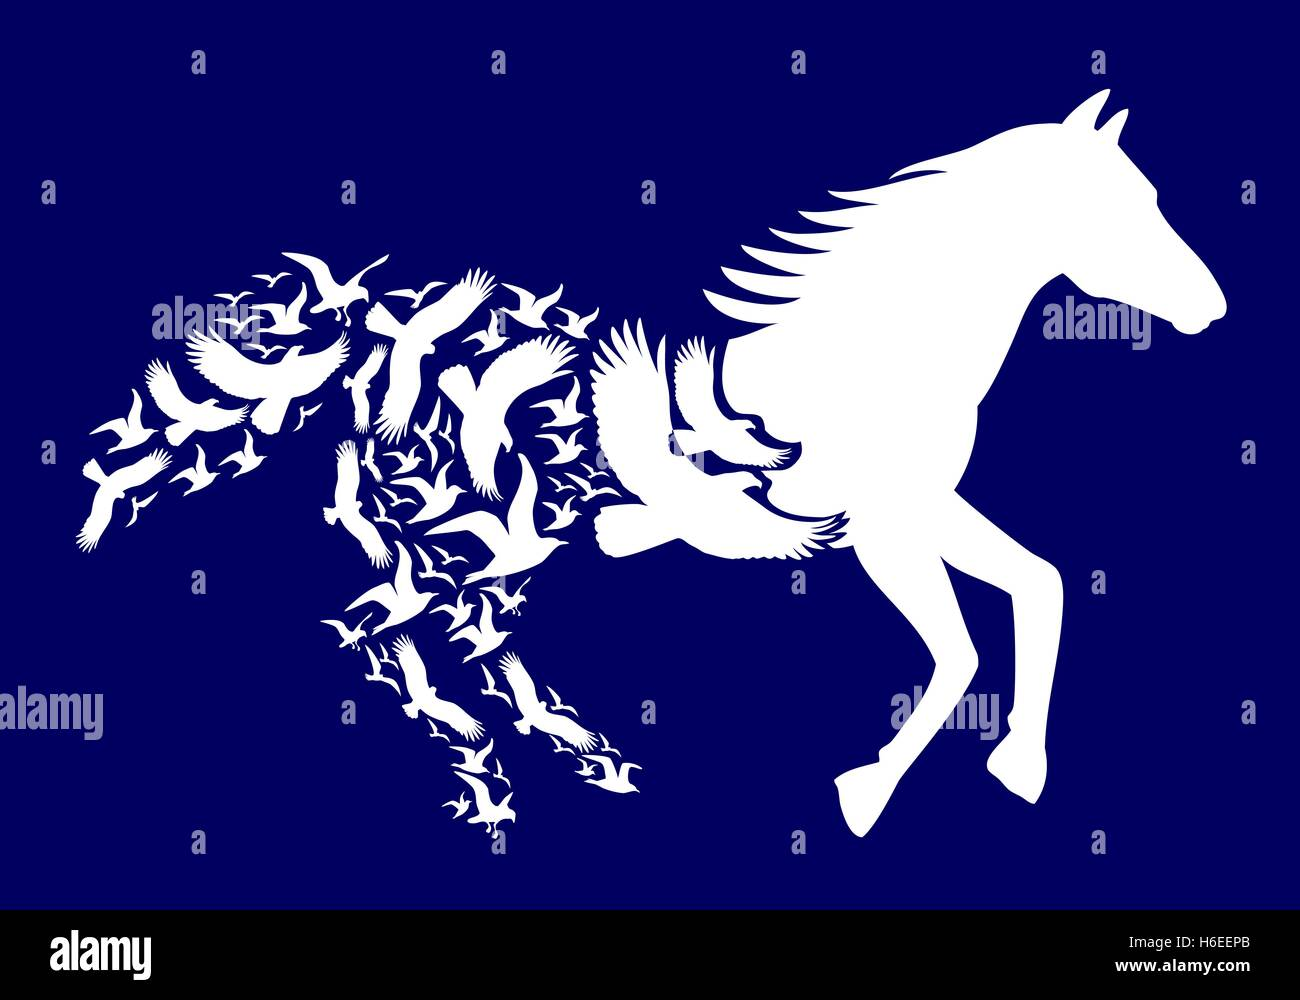 White horse with flying birds on dark blue background, vector illustration - Stock Image